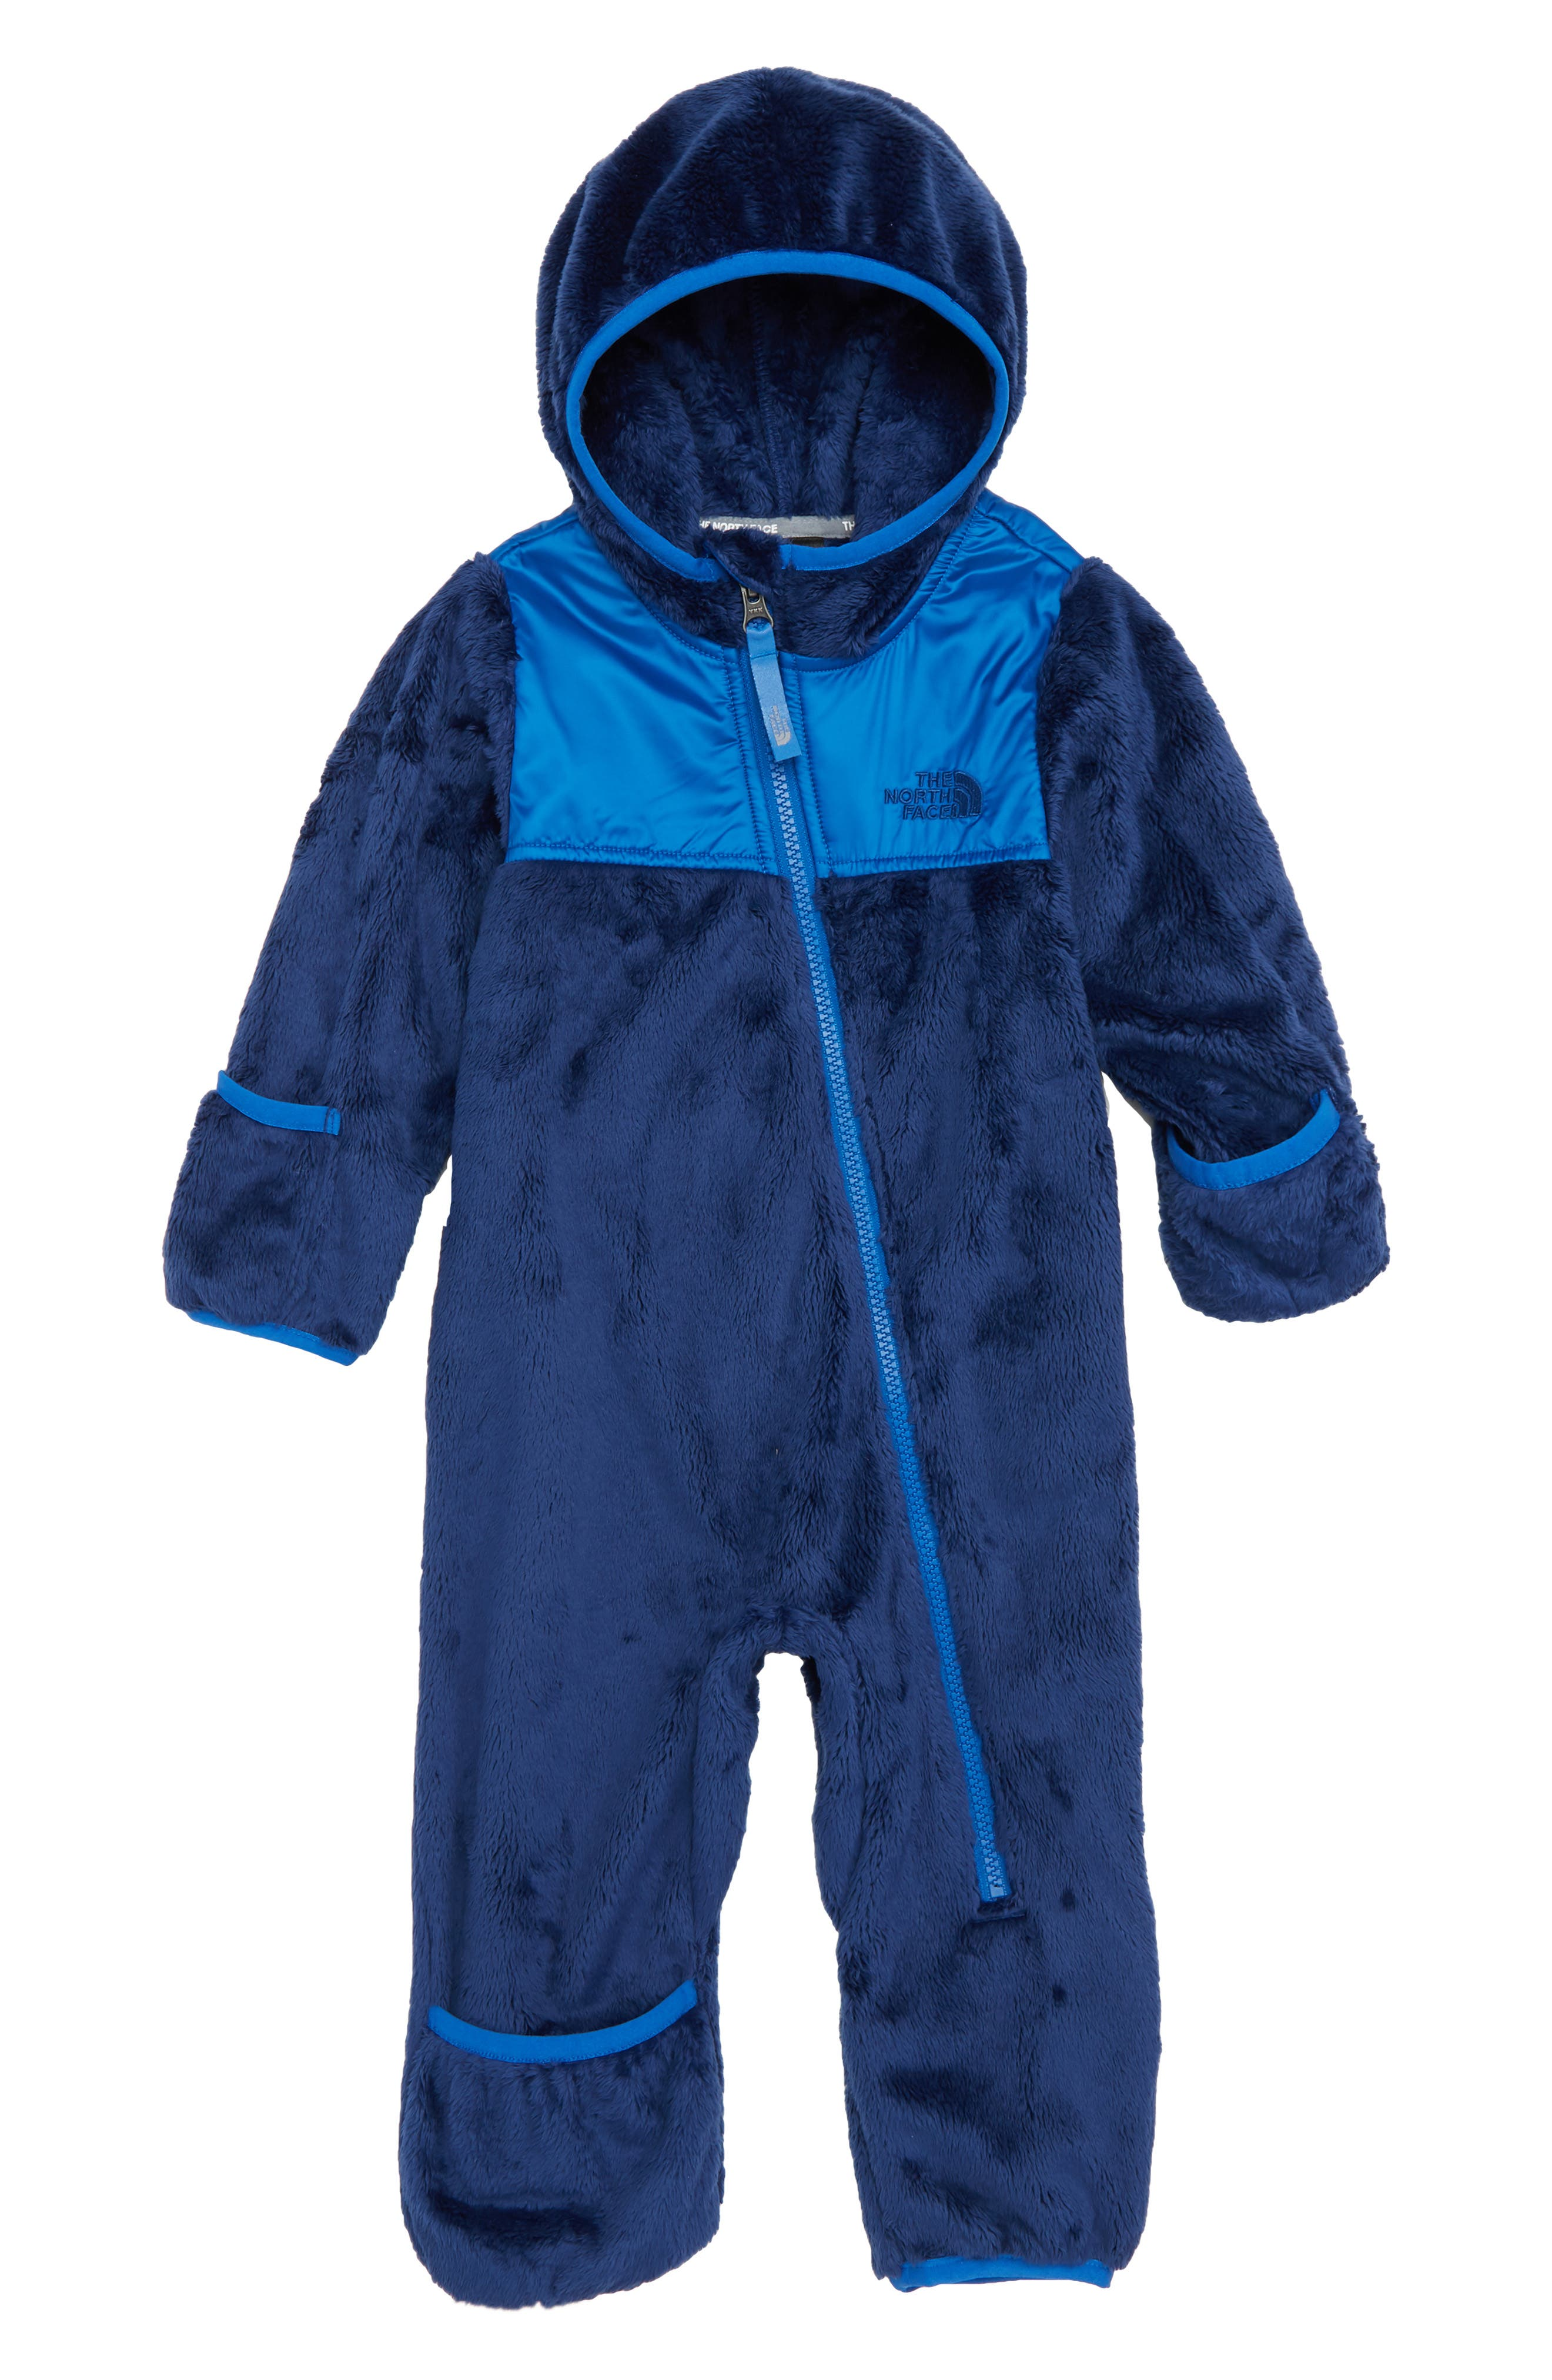 THE NORTH FACE, Oso Hooded Fleece Romper, Main thumbnail 1, color, MIDLINE BLUE